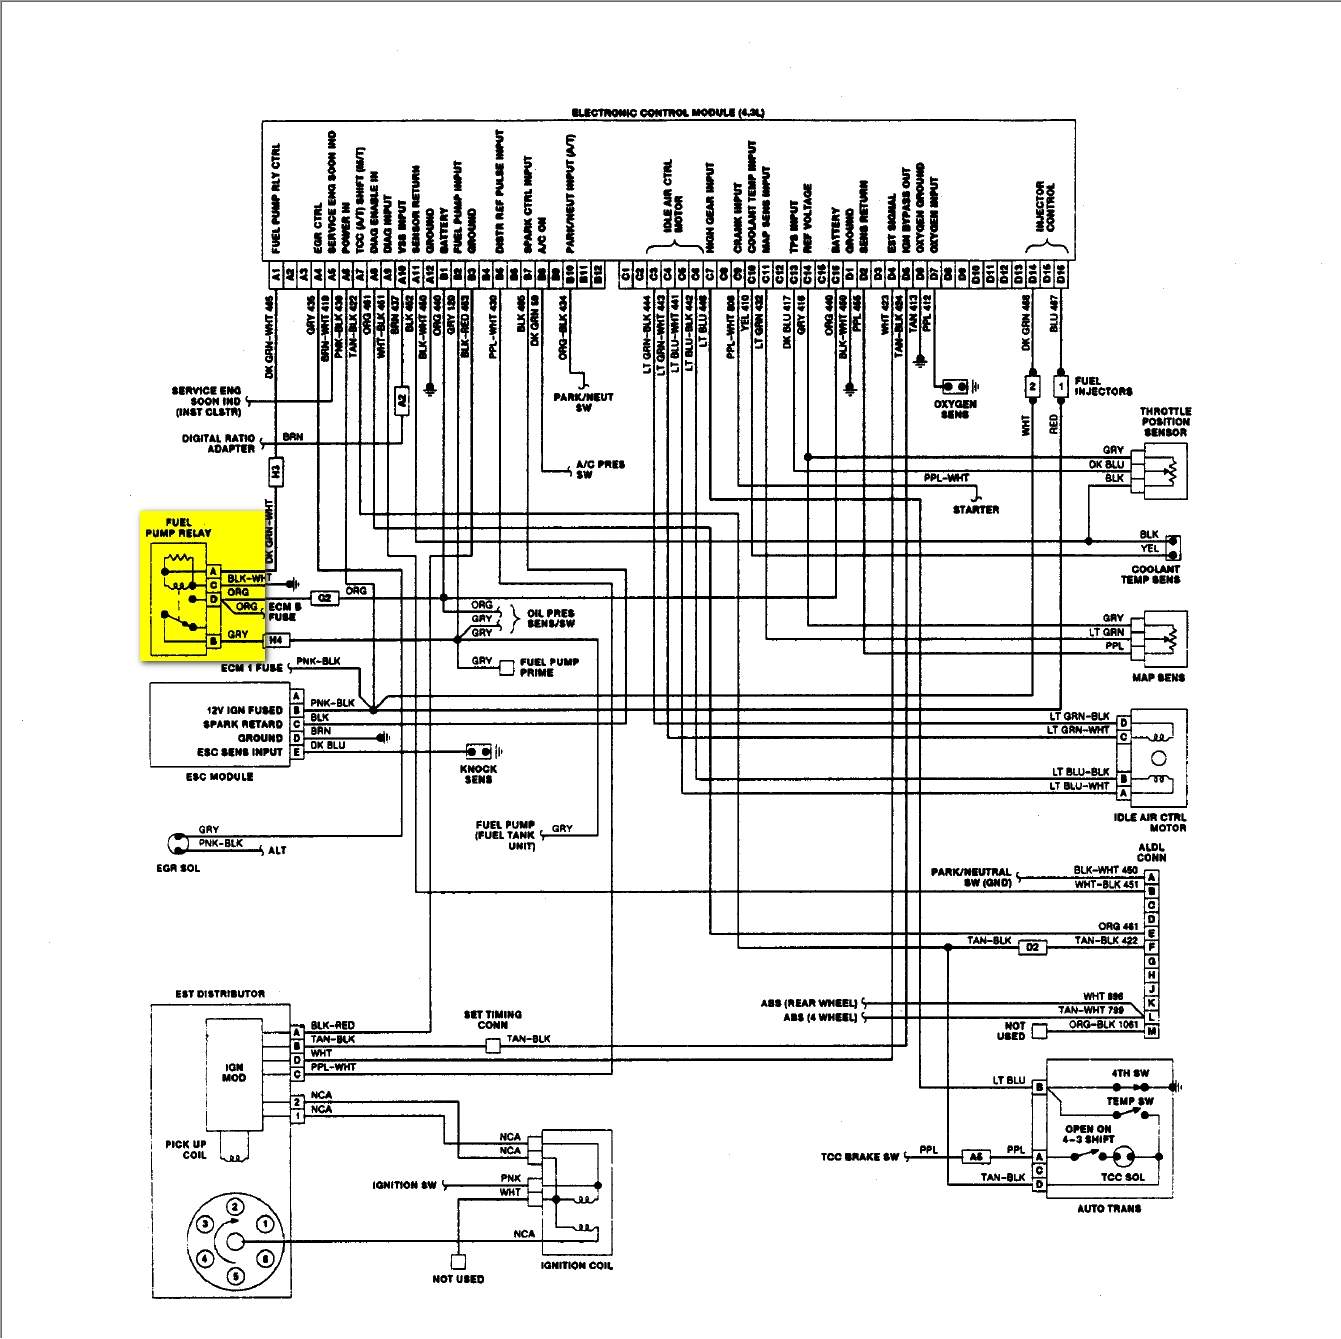 Chevy Astro Van Wiring Diagram